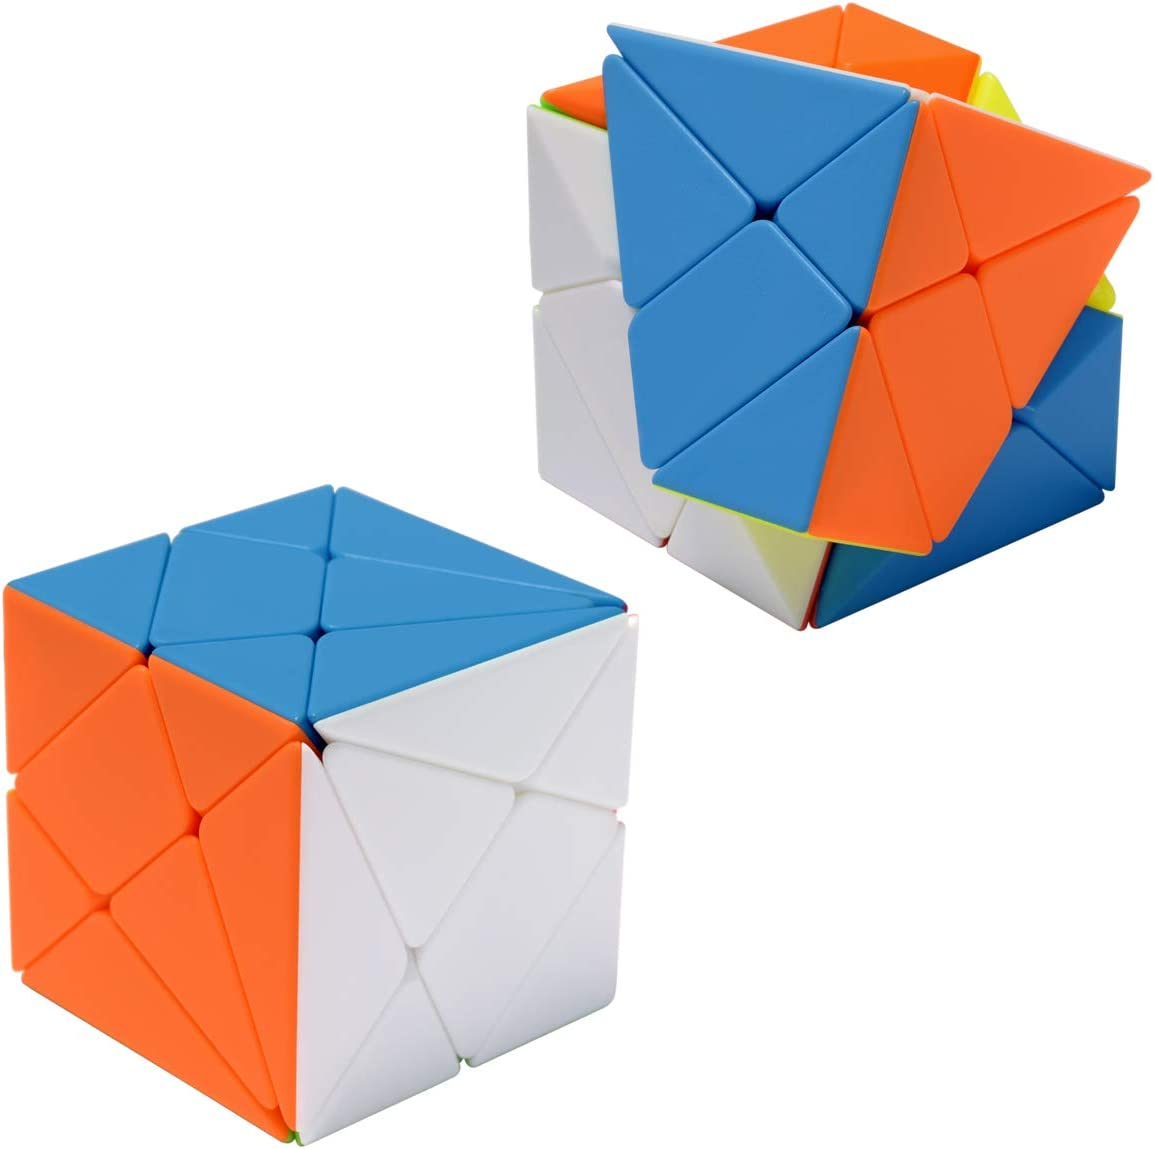 Maomaoyu Stickerless Toys Pack of 3 Cube Set,Windmill Cube Wheel Shape Cube,3x3 Fluctuation Angle Puzzle Cube,3x3 Fisher Cube YiLeng Twisty Puzzle